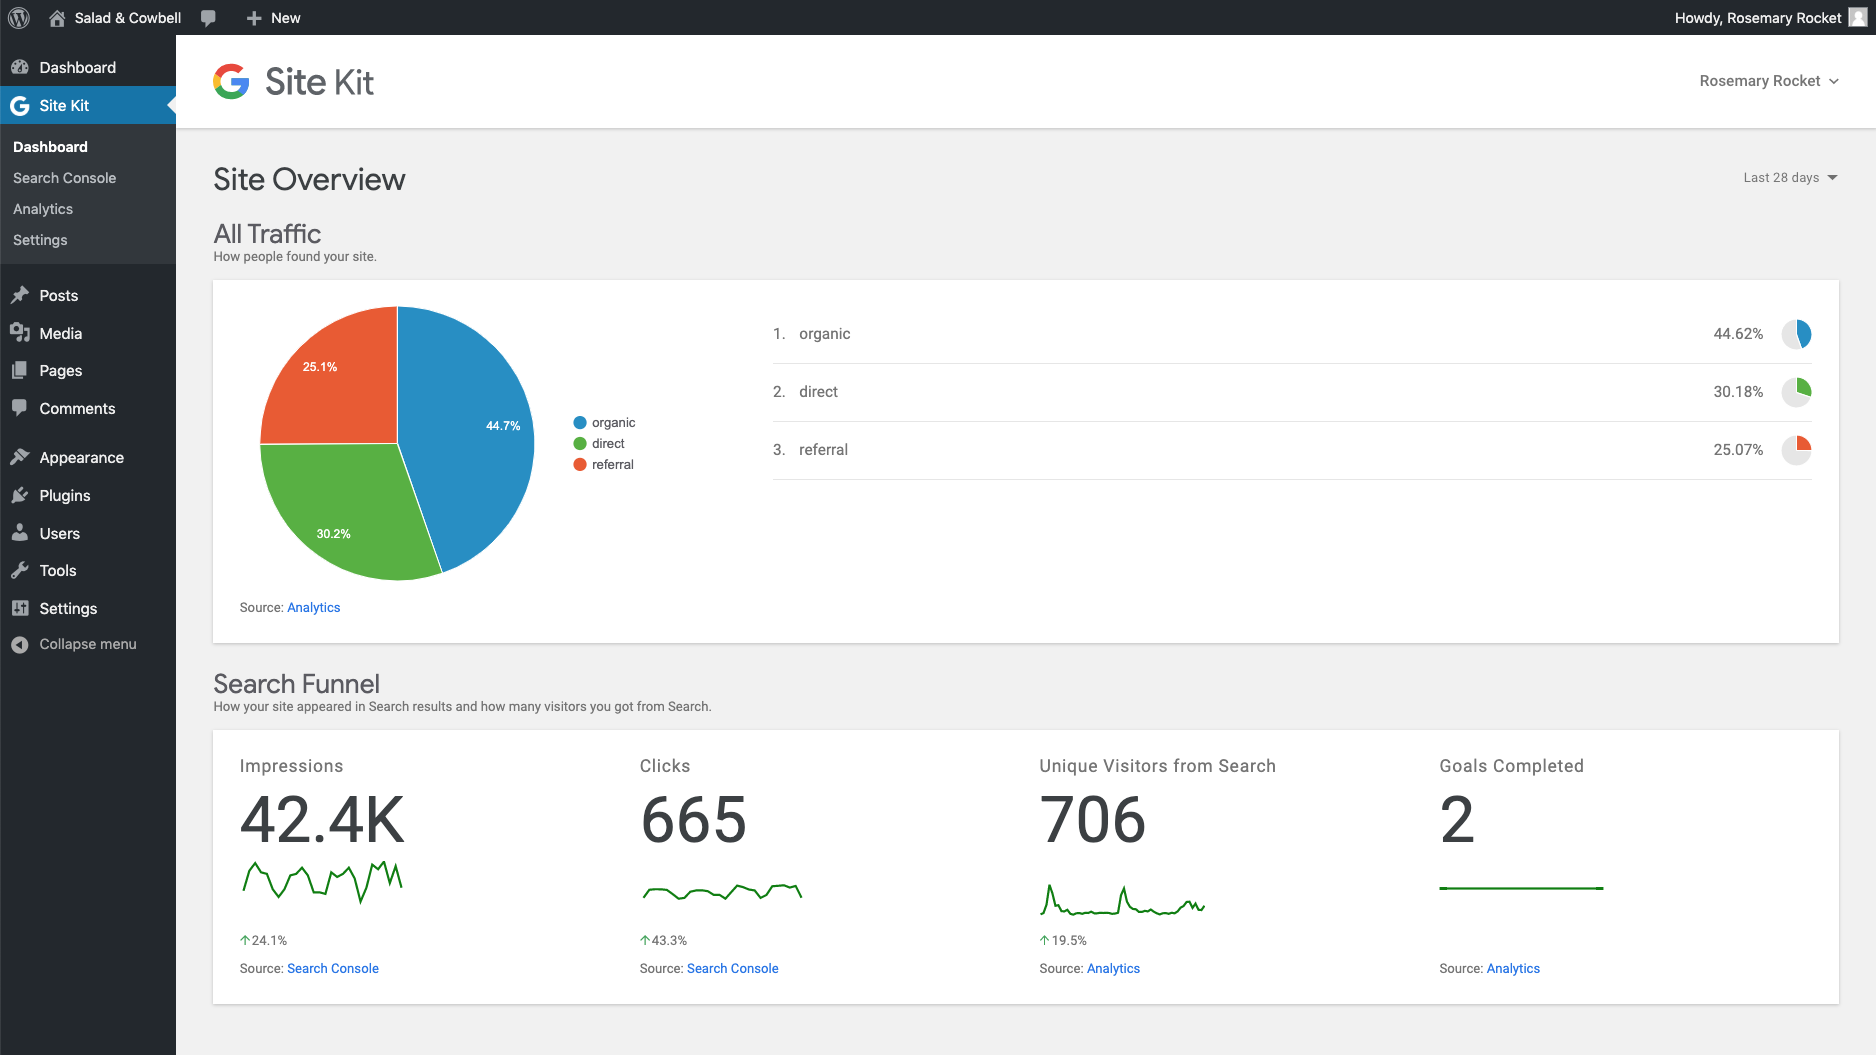 Site Kit by Google Dashboard